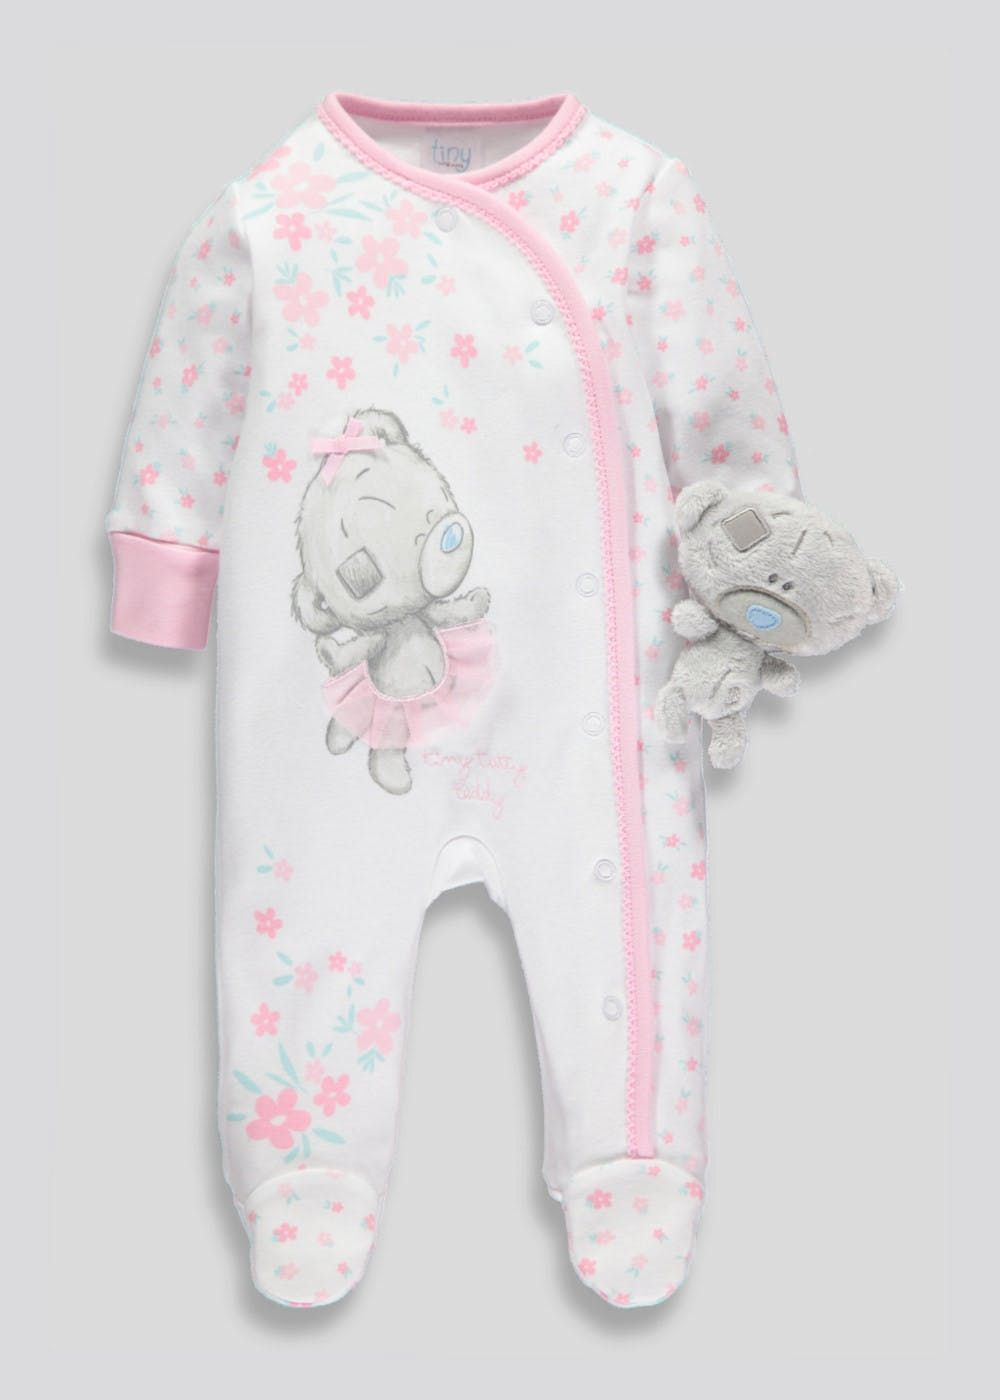 1f53a861e Unisex Tatty Teddy Sleepsuit (Tiny Baby-6mths) – Pink